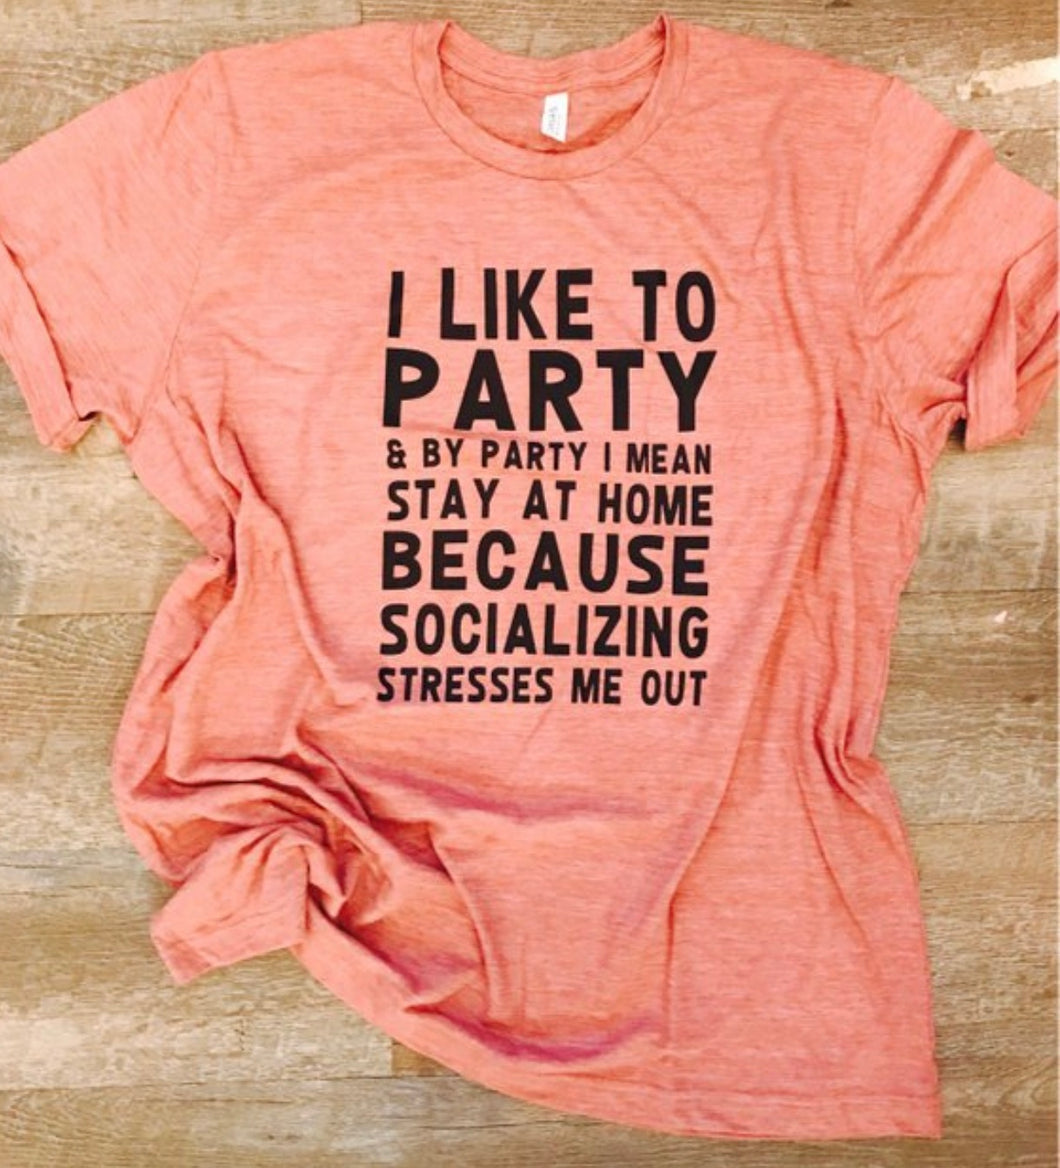 I like to party and by party I mean stay at home because socializing stresses me out   Unisex fit - Mavictoria Designs Hot Press Express